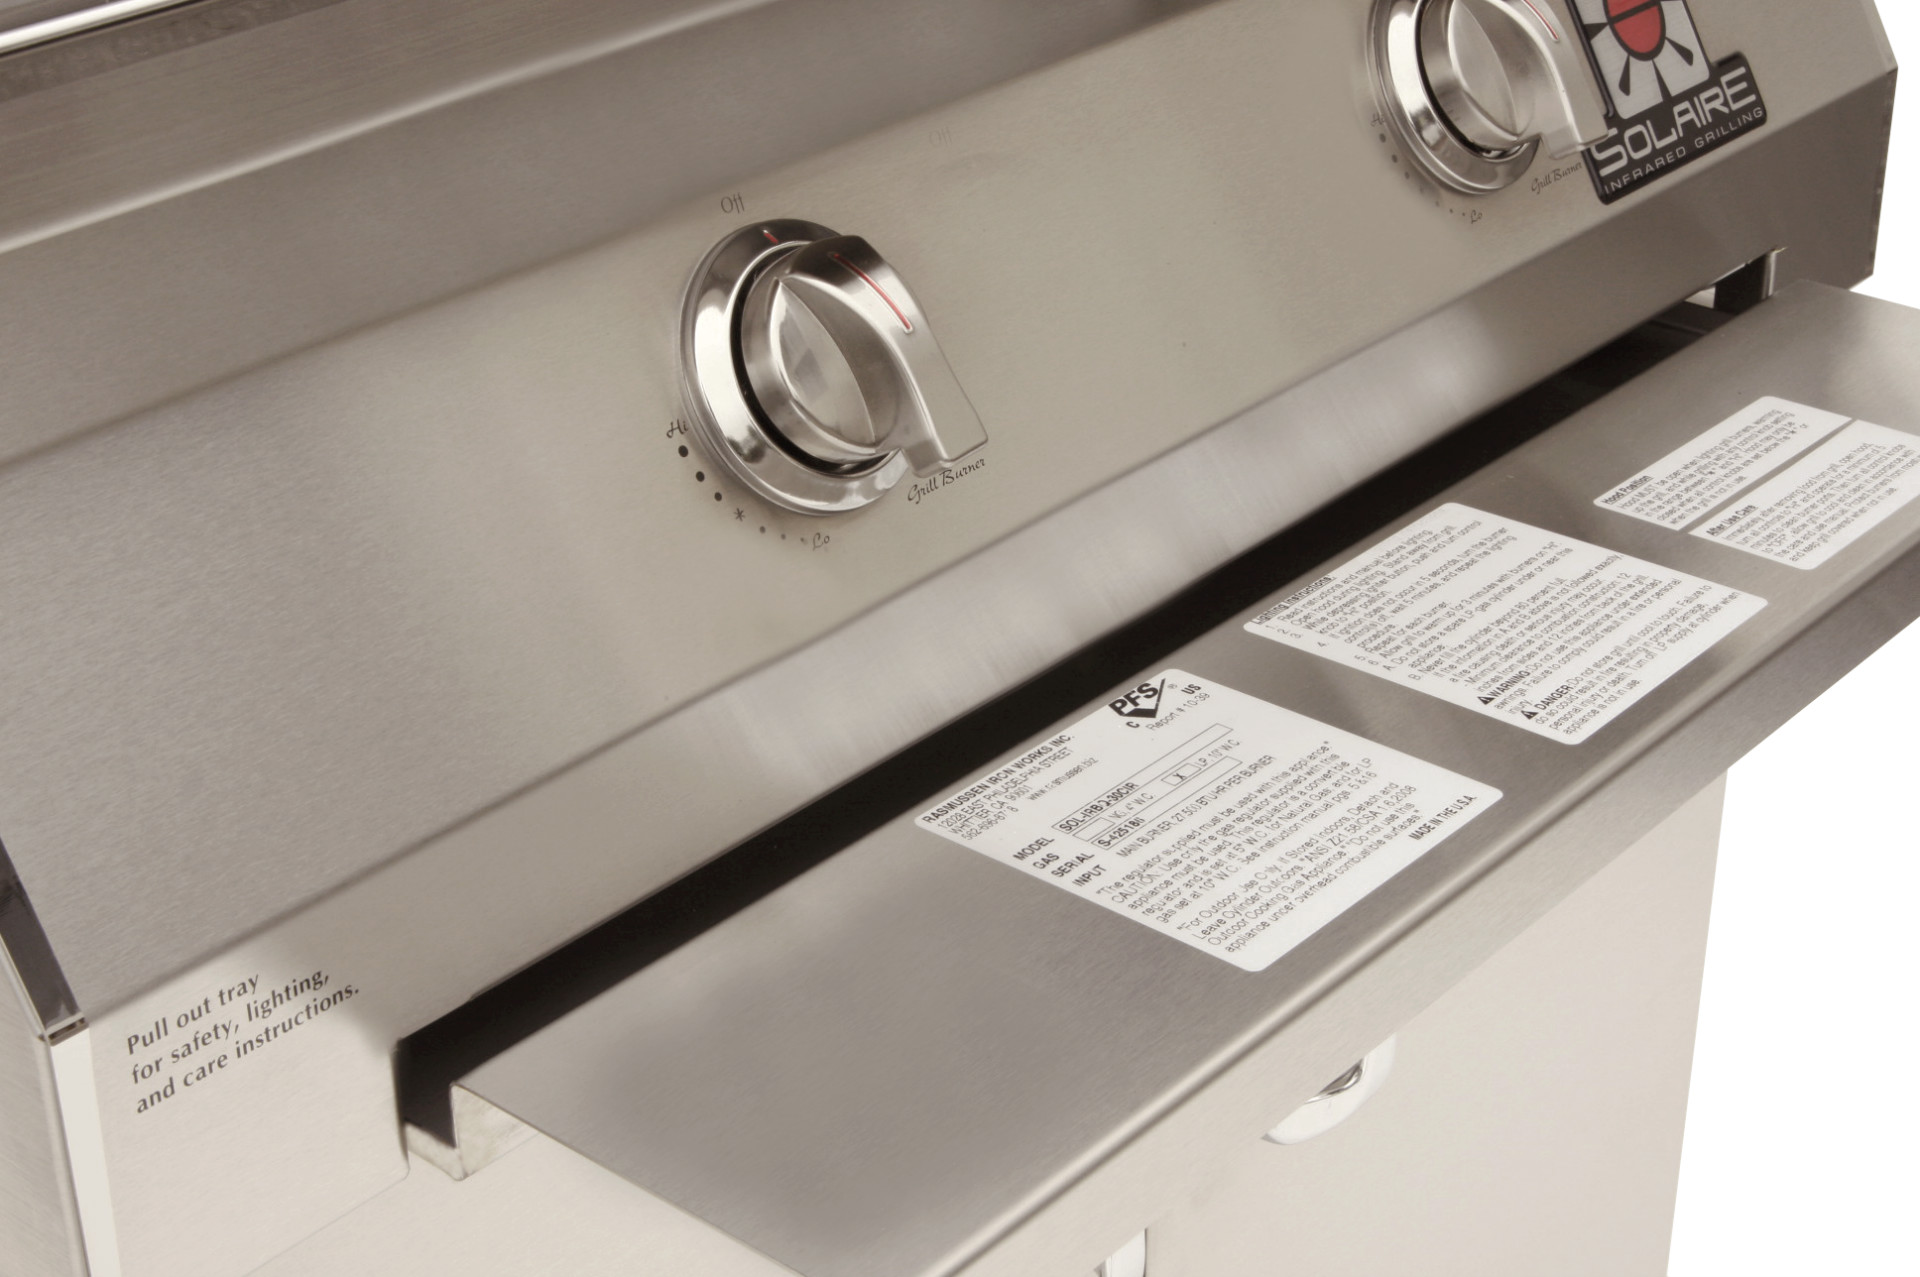 IRBQ-30C-lf_detail-drip-tray-instructions_2-r100-w1920